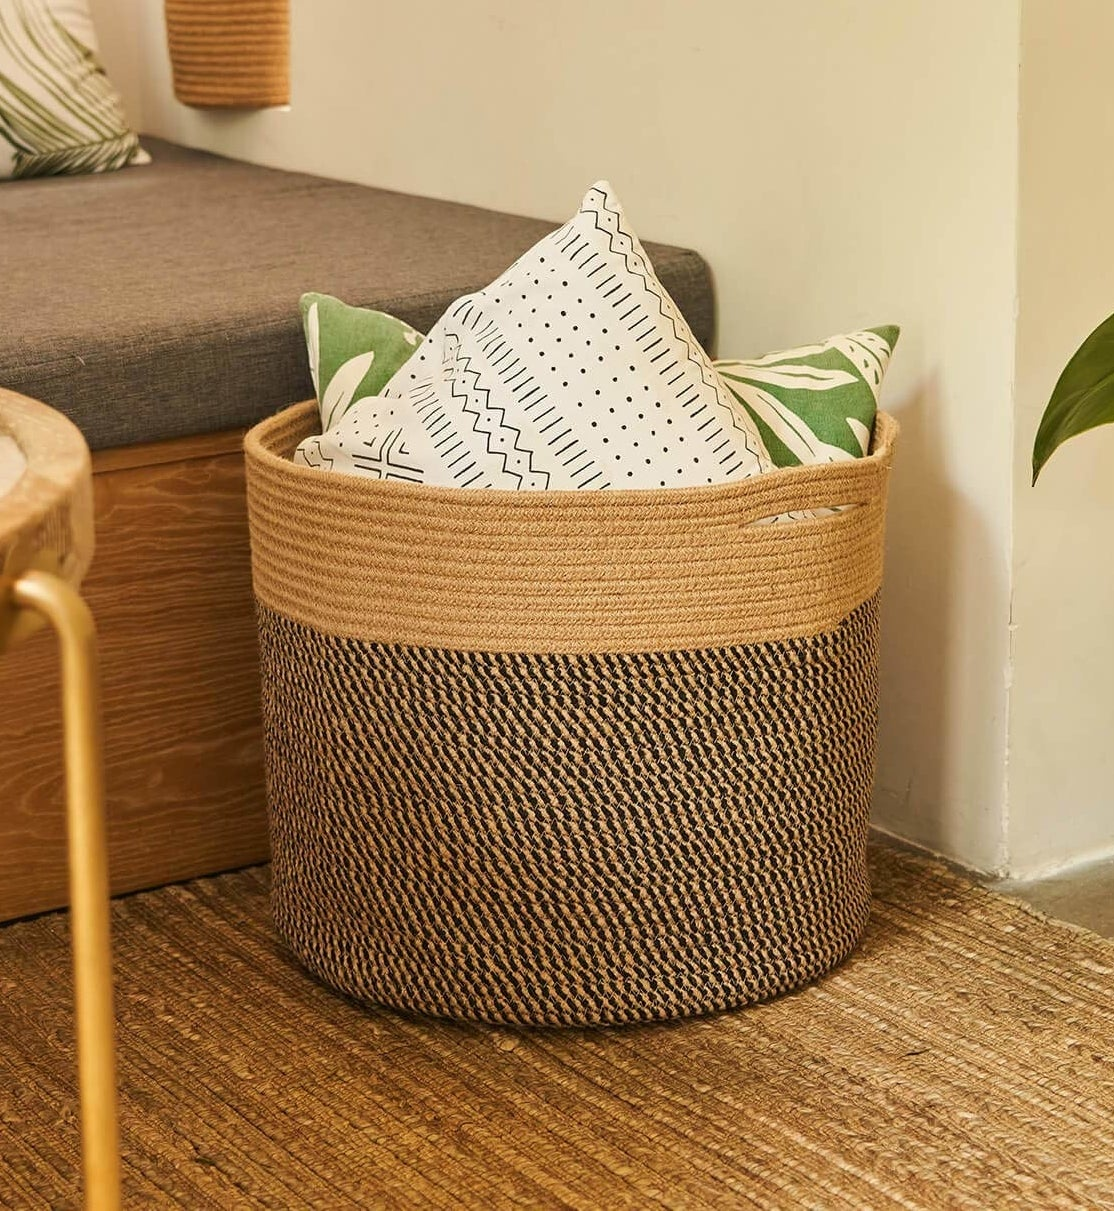 The black and jute basket